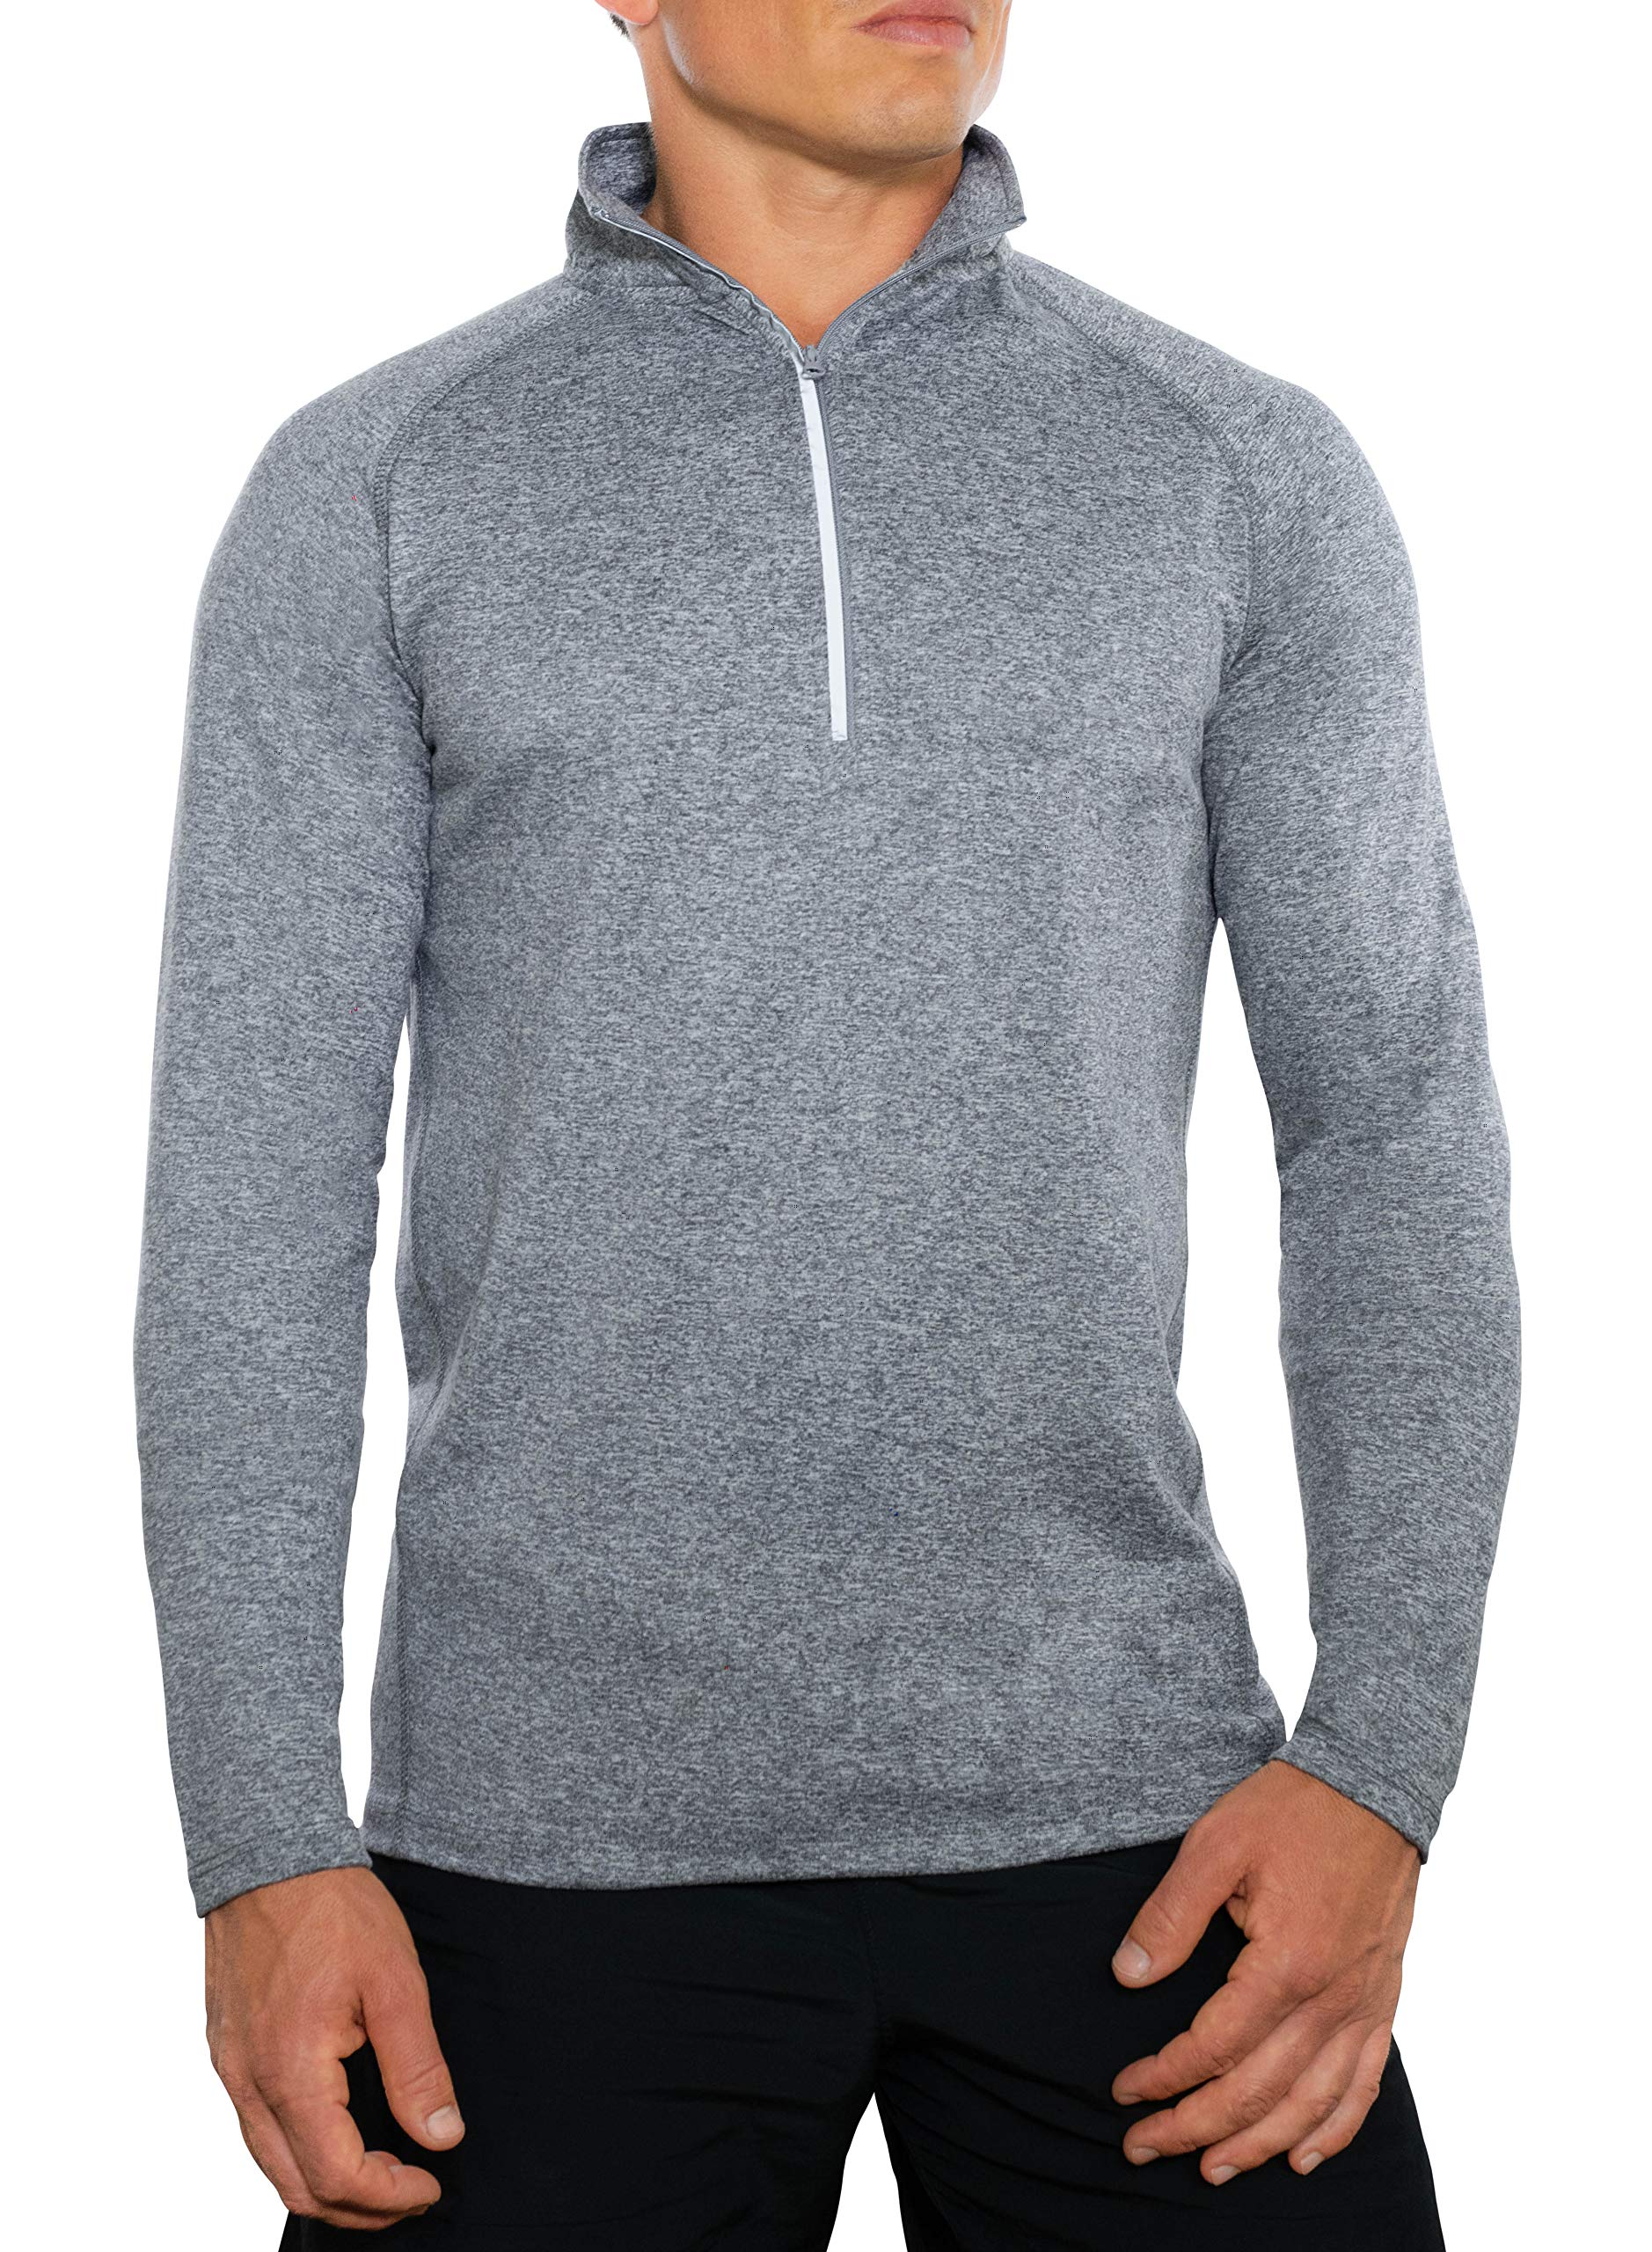 CC Perfect Slim Fit Quarter Zip Pullover Men | Quick Dry Fit Tech Performance | Mens Moisture Wicking Long Sleeve 1/4 Zip Up